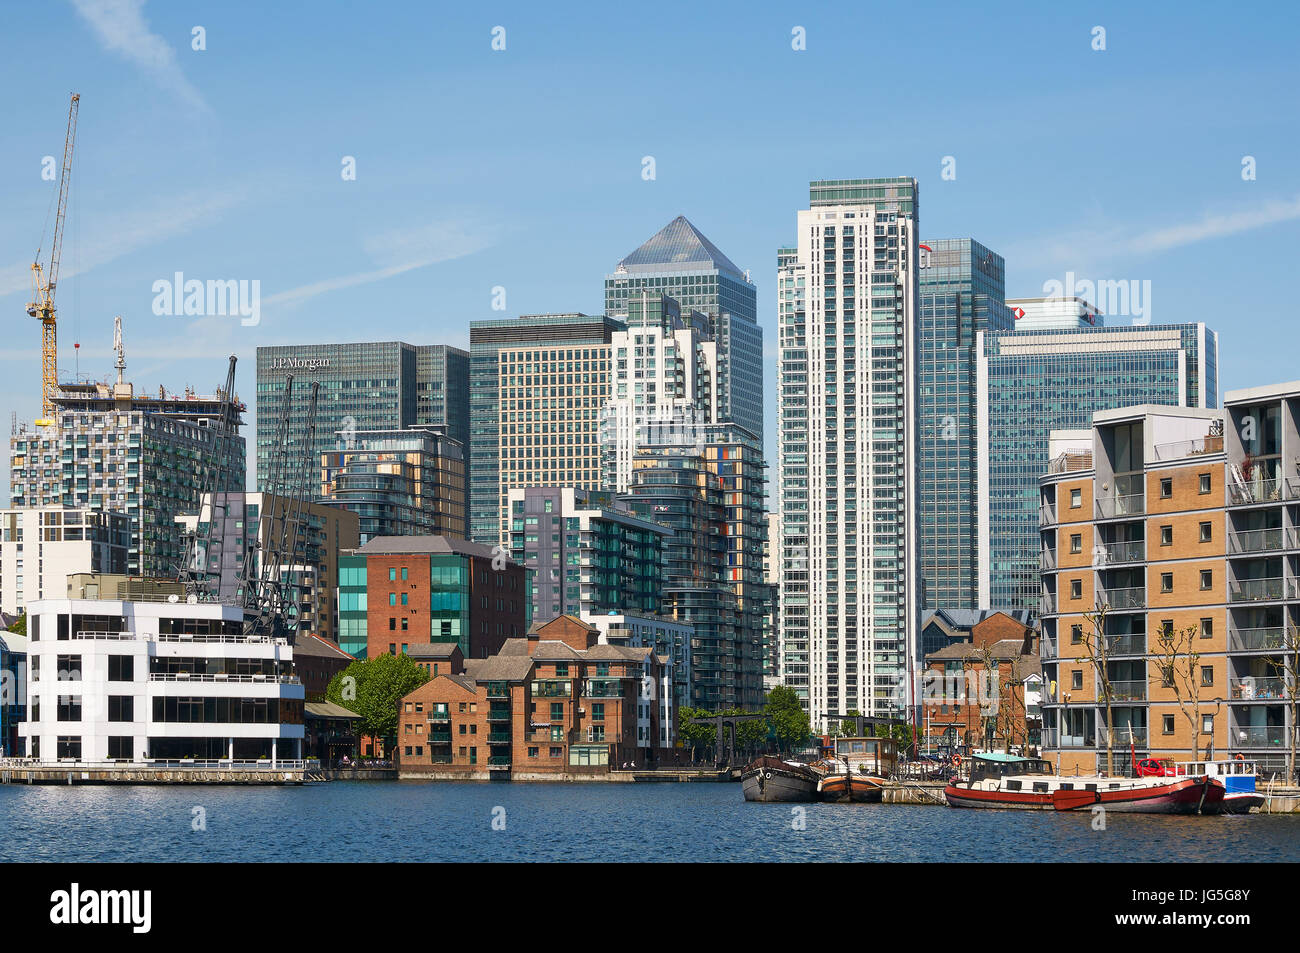 Buildings at Canary Wharf, Docklands, East London UK, from Millwall Dock - Stock Image